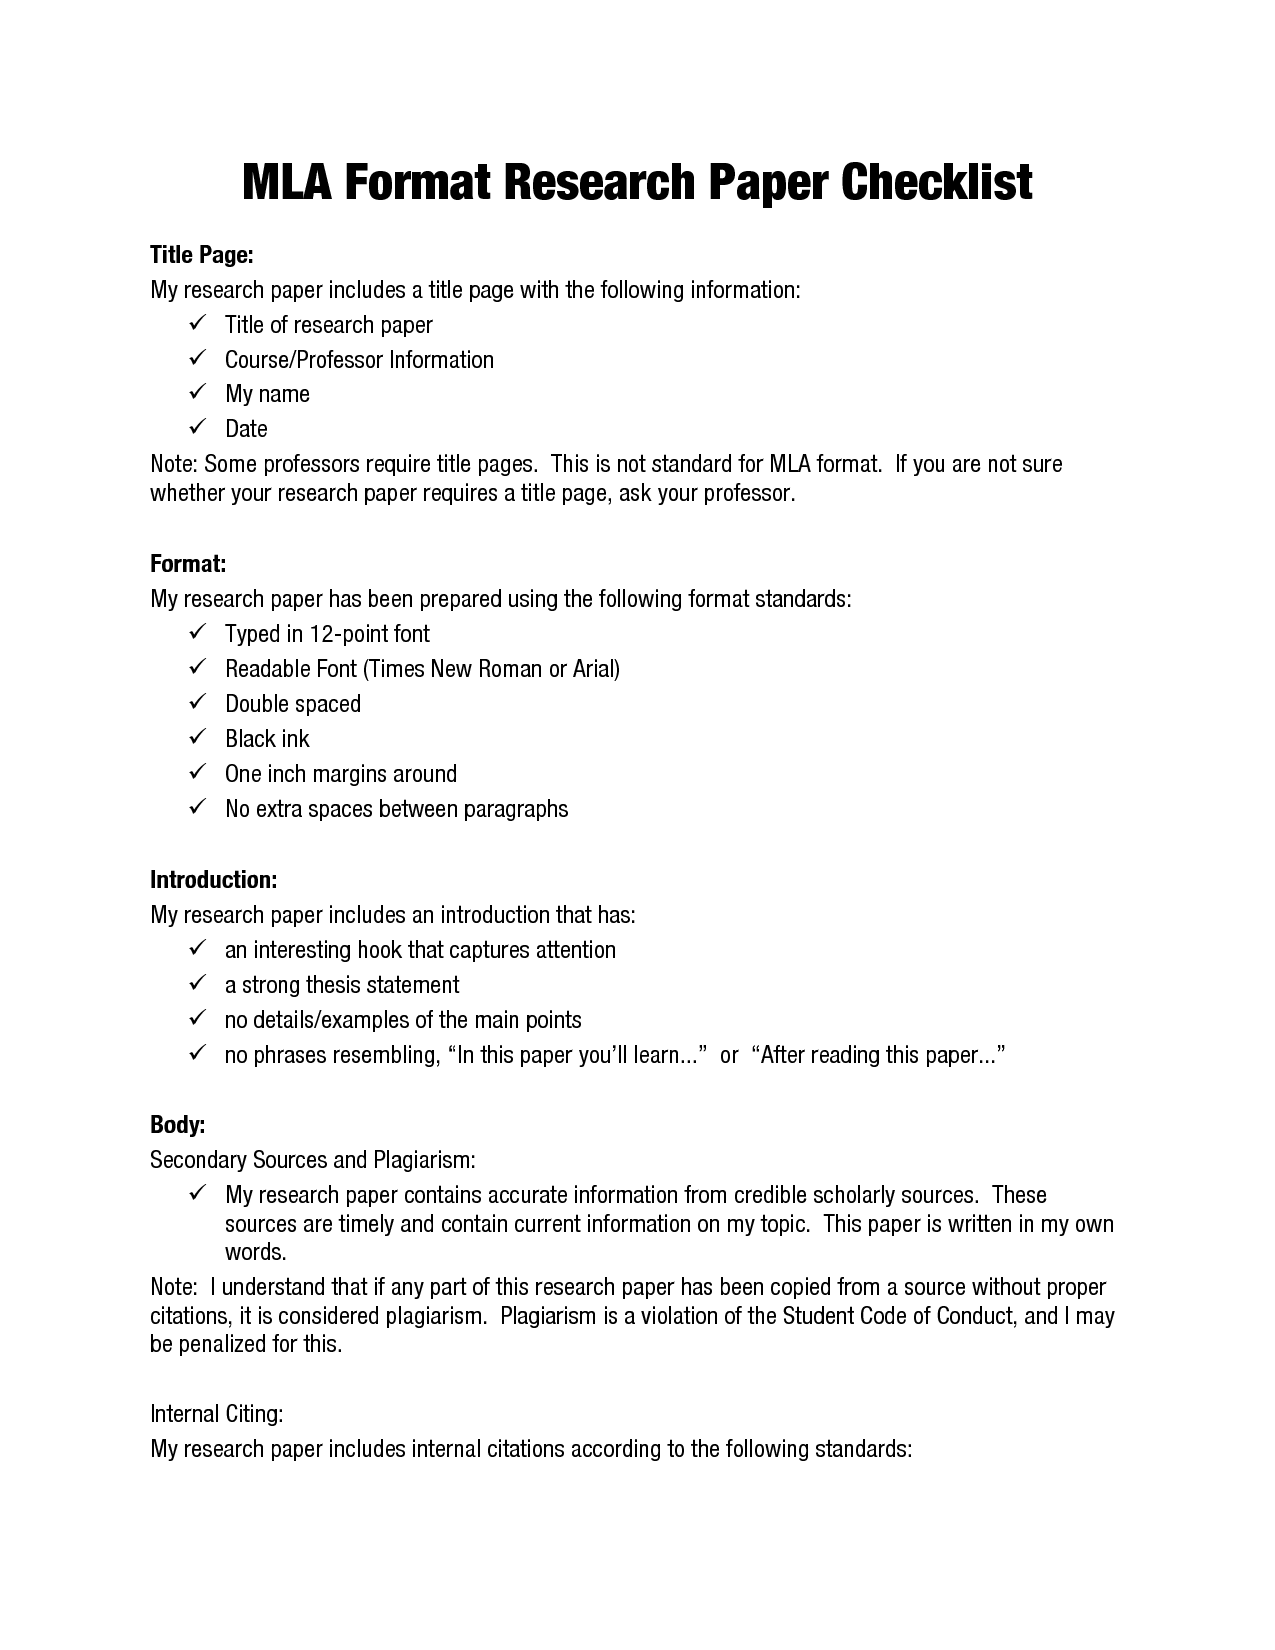 mla format to write an essay Looking for tips on writing an essay mla style to start, set your default font as times new roman, 12 point.